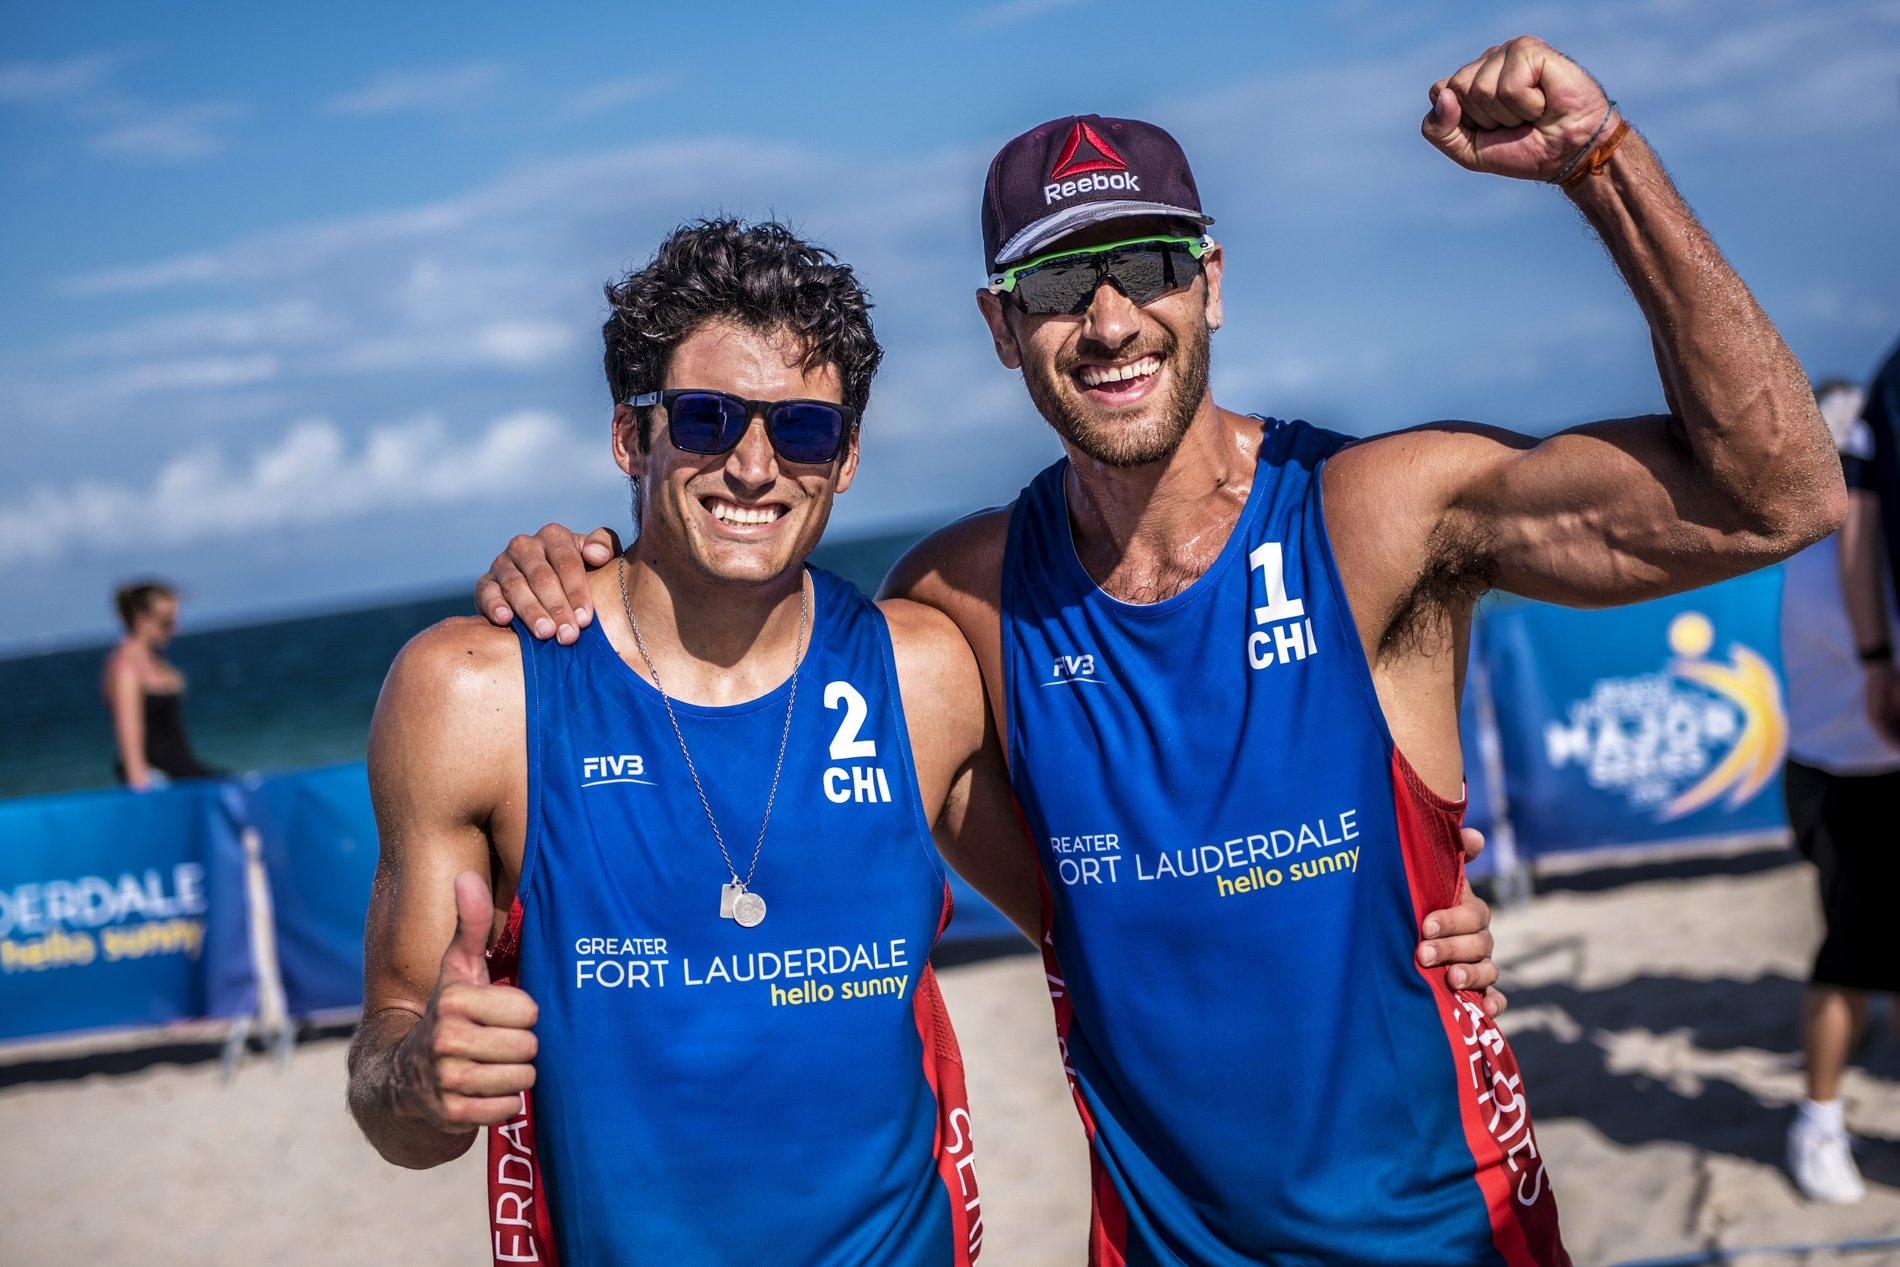 Esteban and Marco Grimalt competed in the 2018 Fort Lauderdale Major